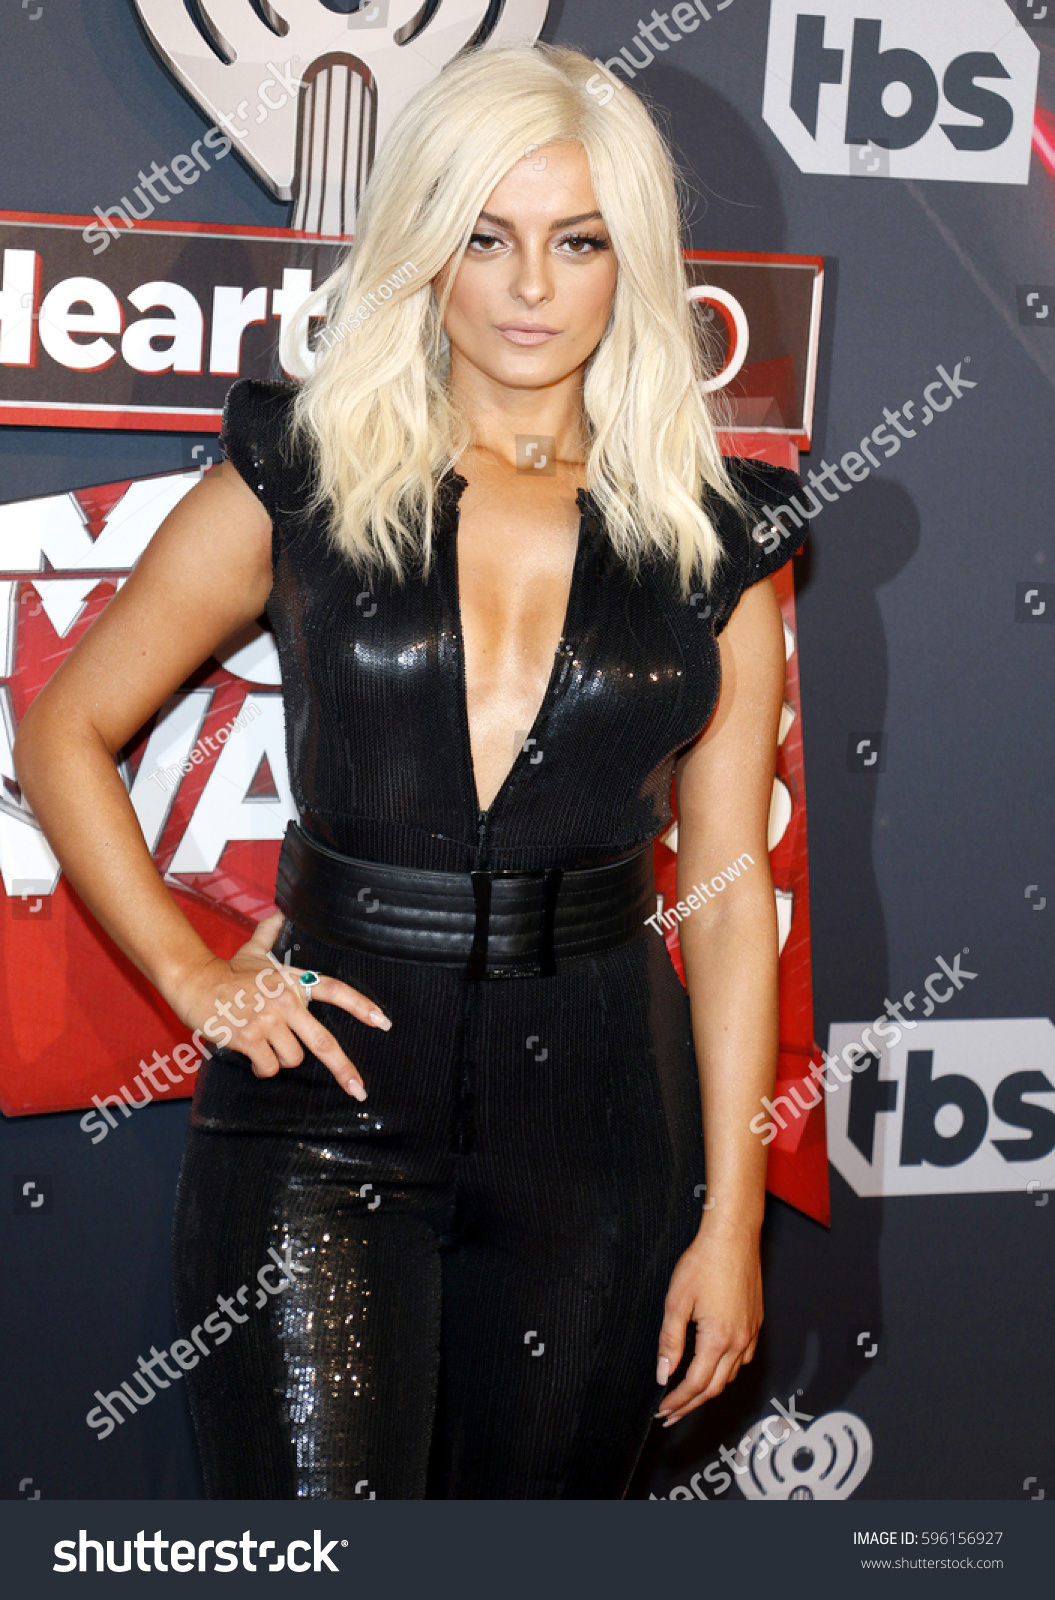 Bebe Rexha 2017 Iheartradio Music Awards Stock Photo (Edit Now